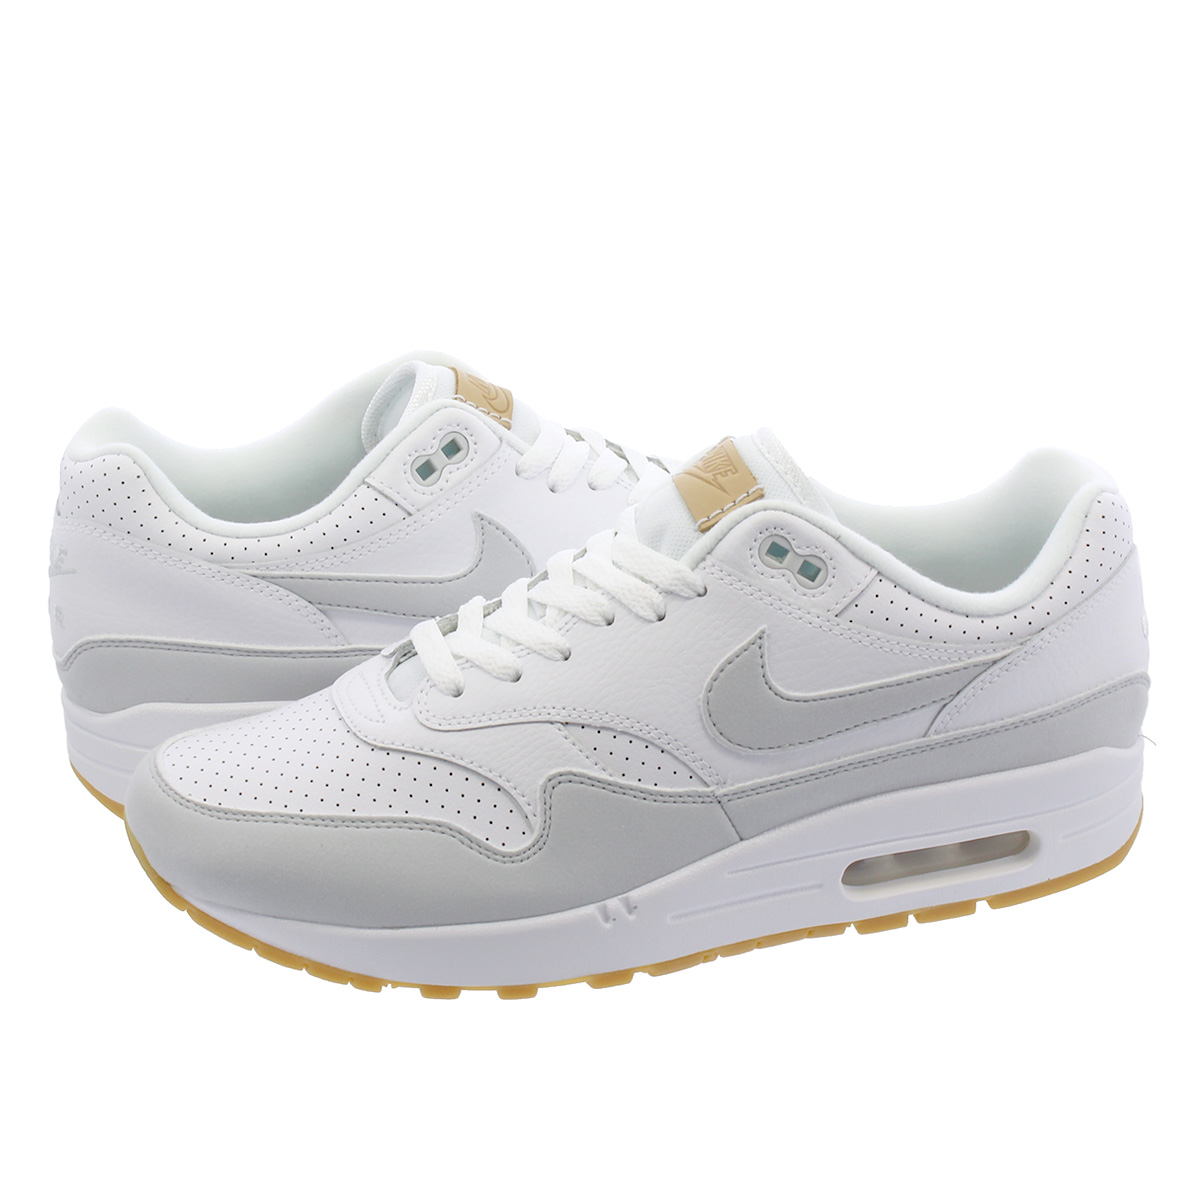 cheaper dd7e1 f1c18 NIKE AIR MAX 1 Kie Ney AMAX 1 WHITEGUM YELLOWPURE PLATINUMSILVER ah8145- 103